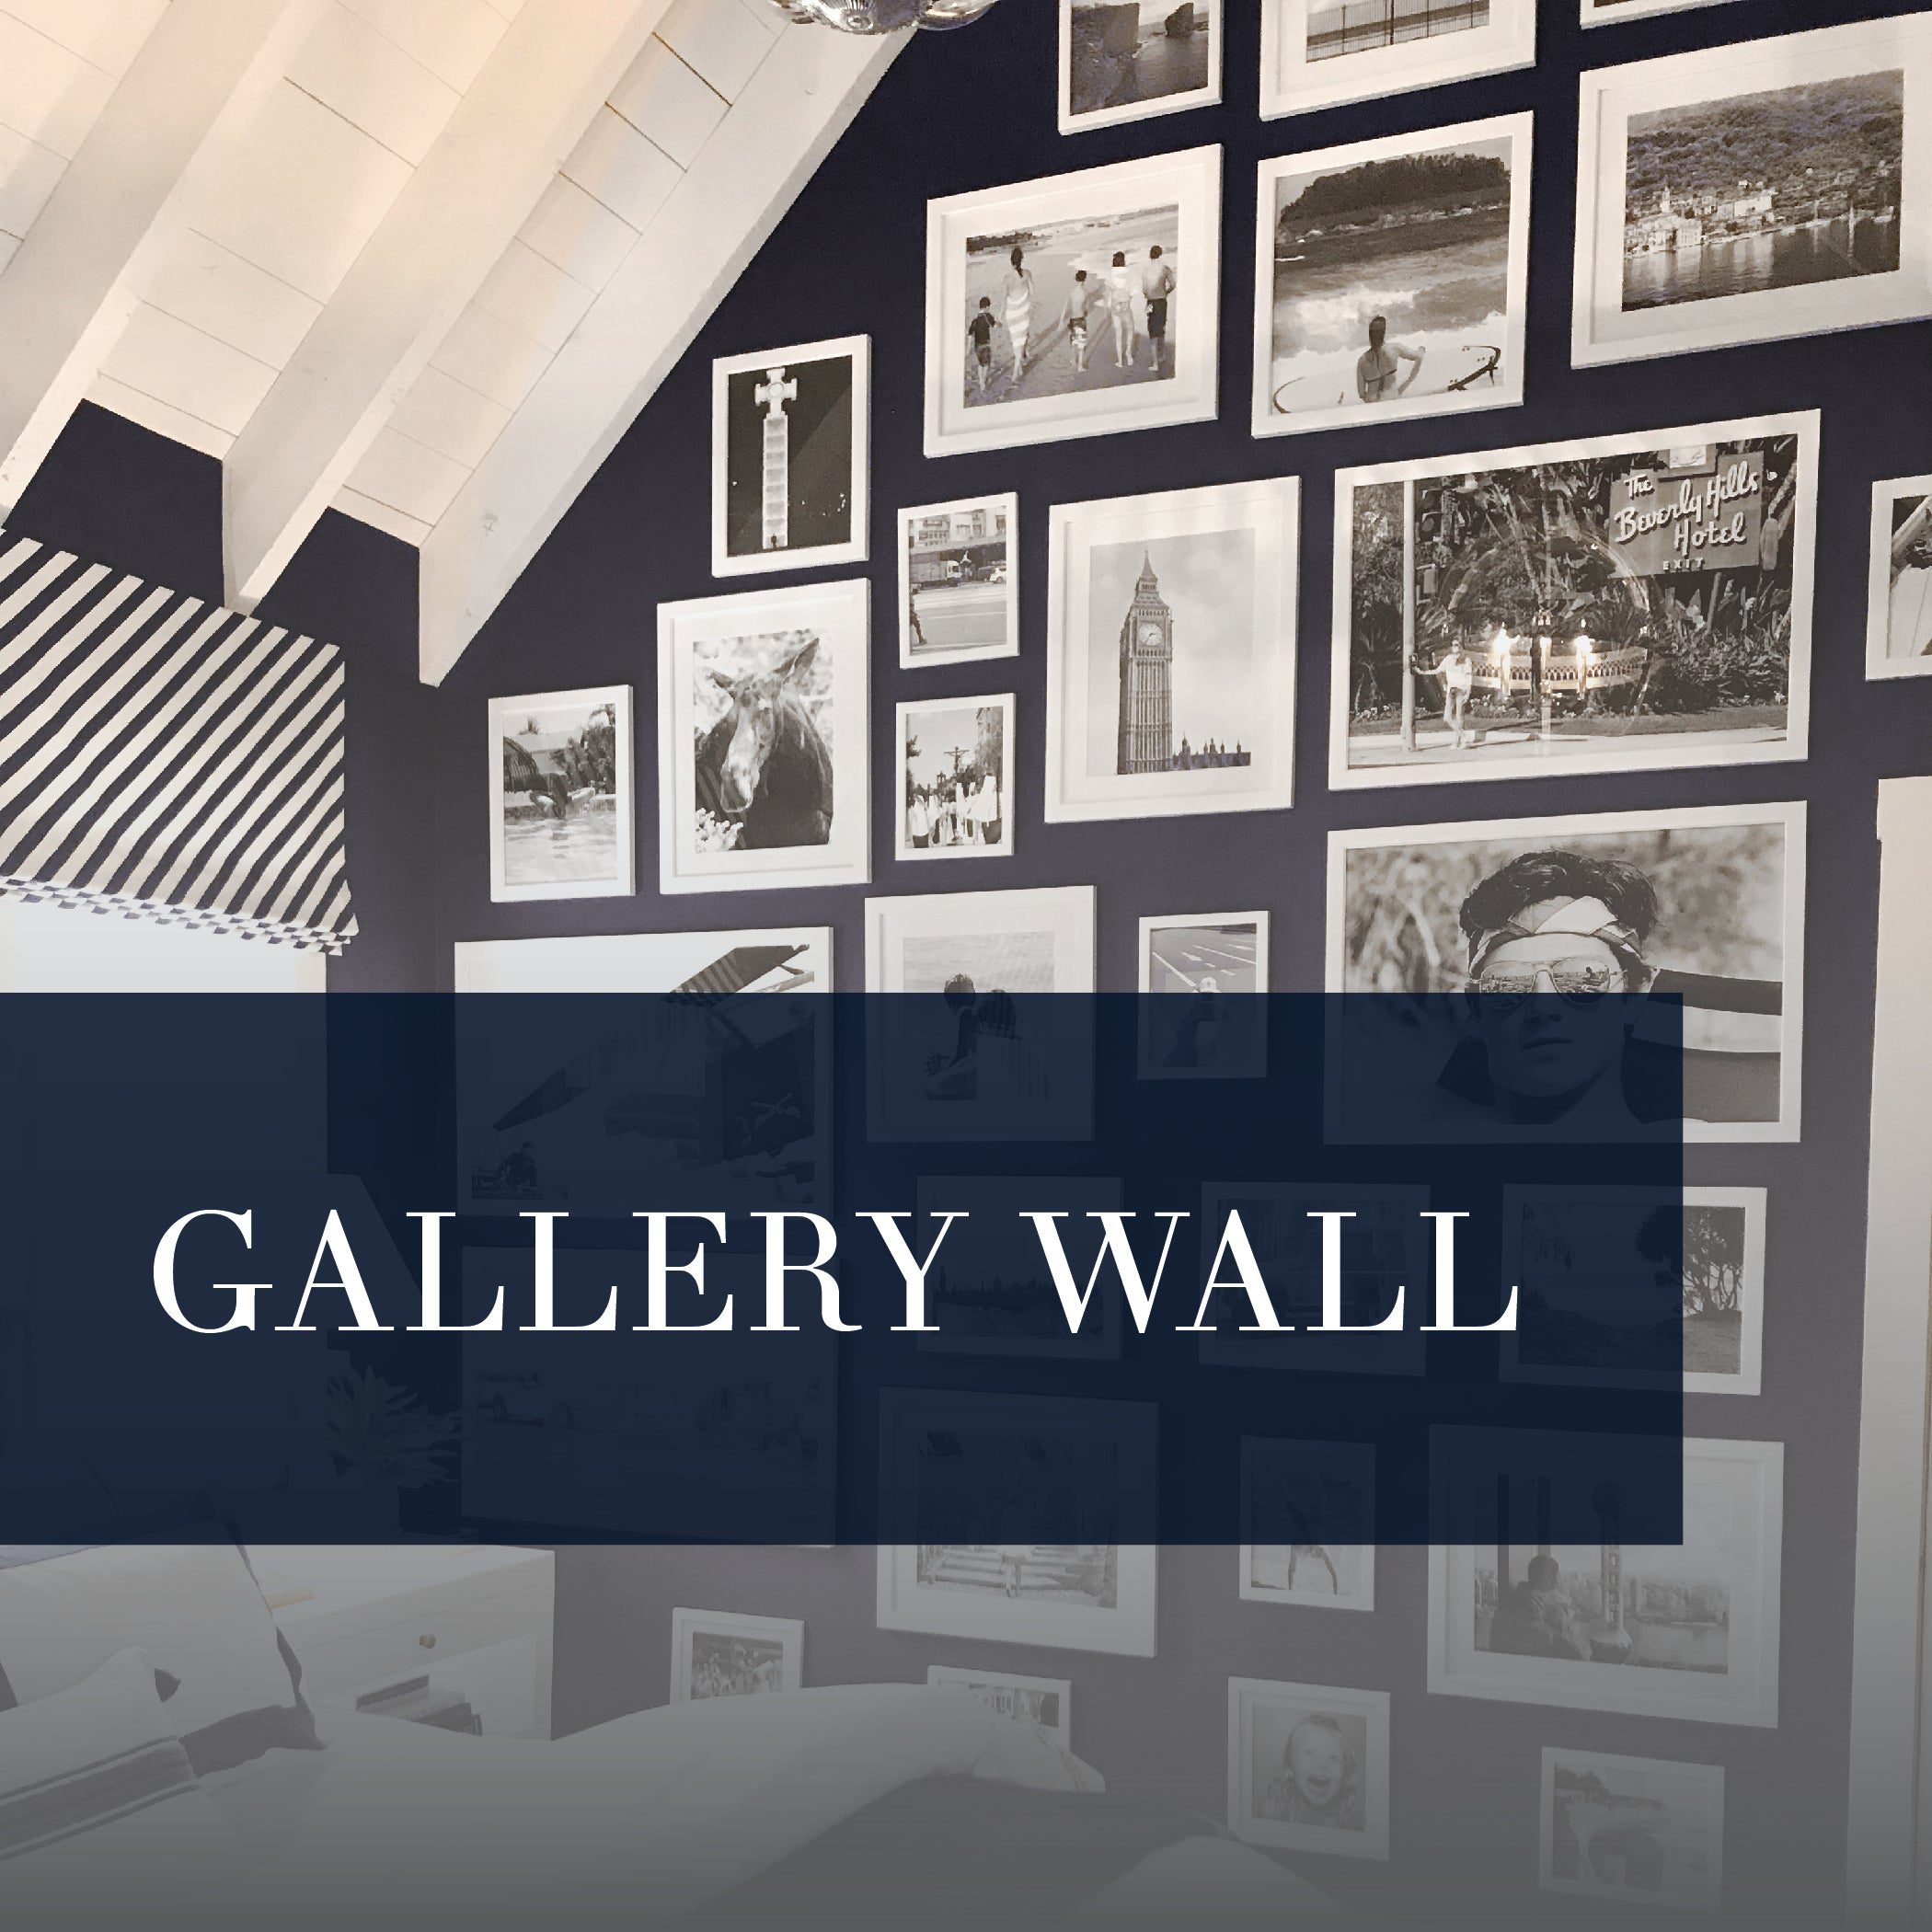 CASE STUDY: Gallery Wall... From Rendering To Install